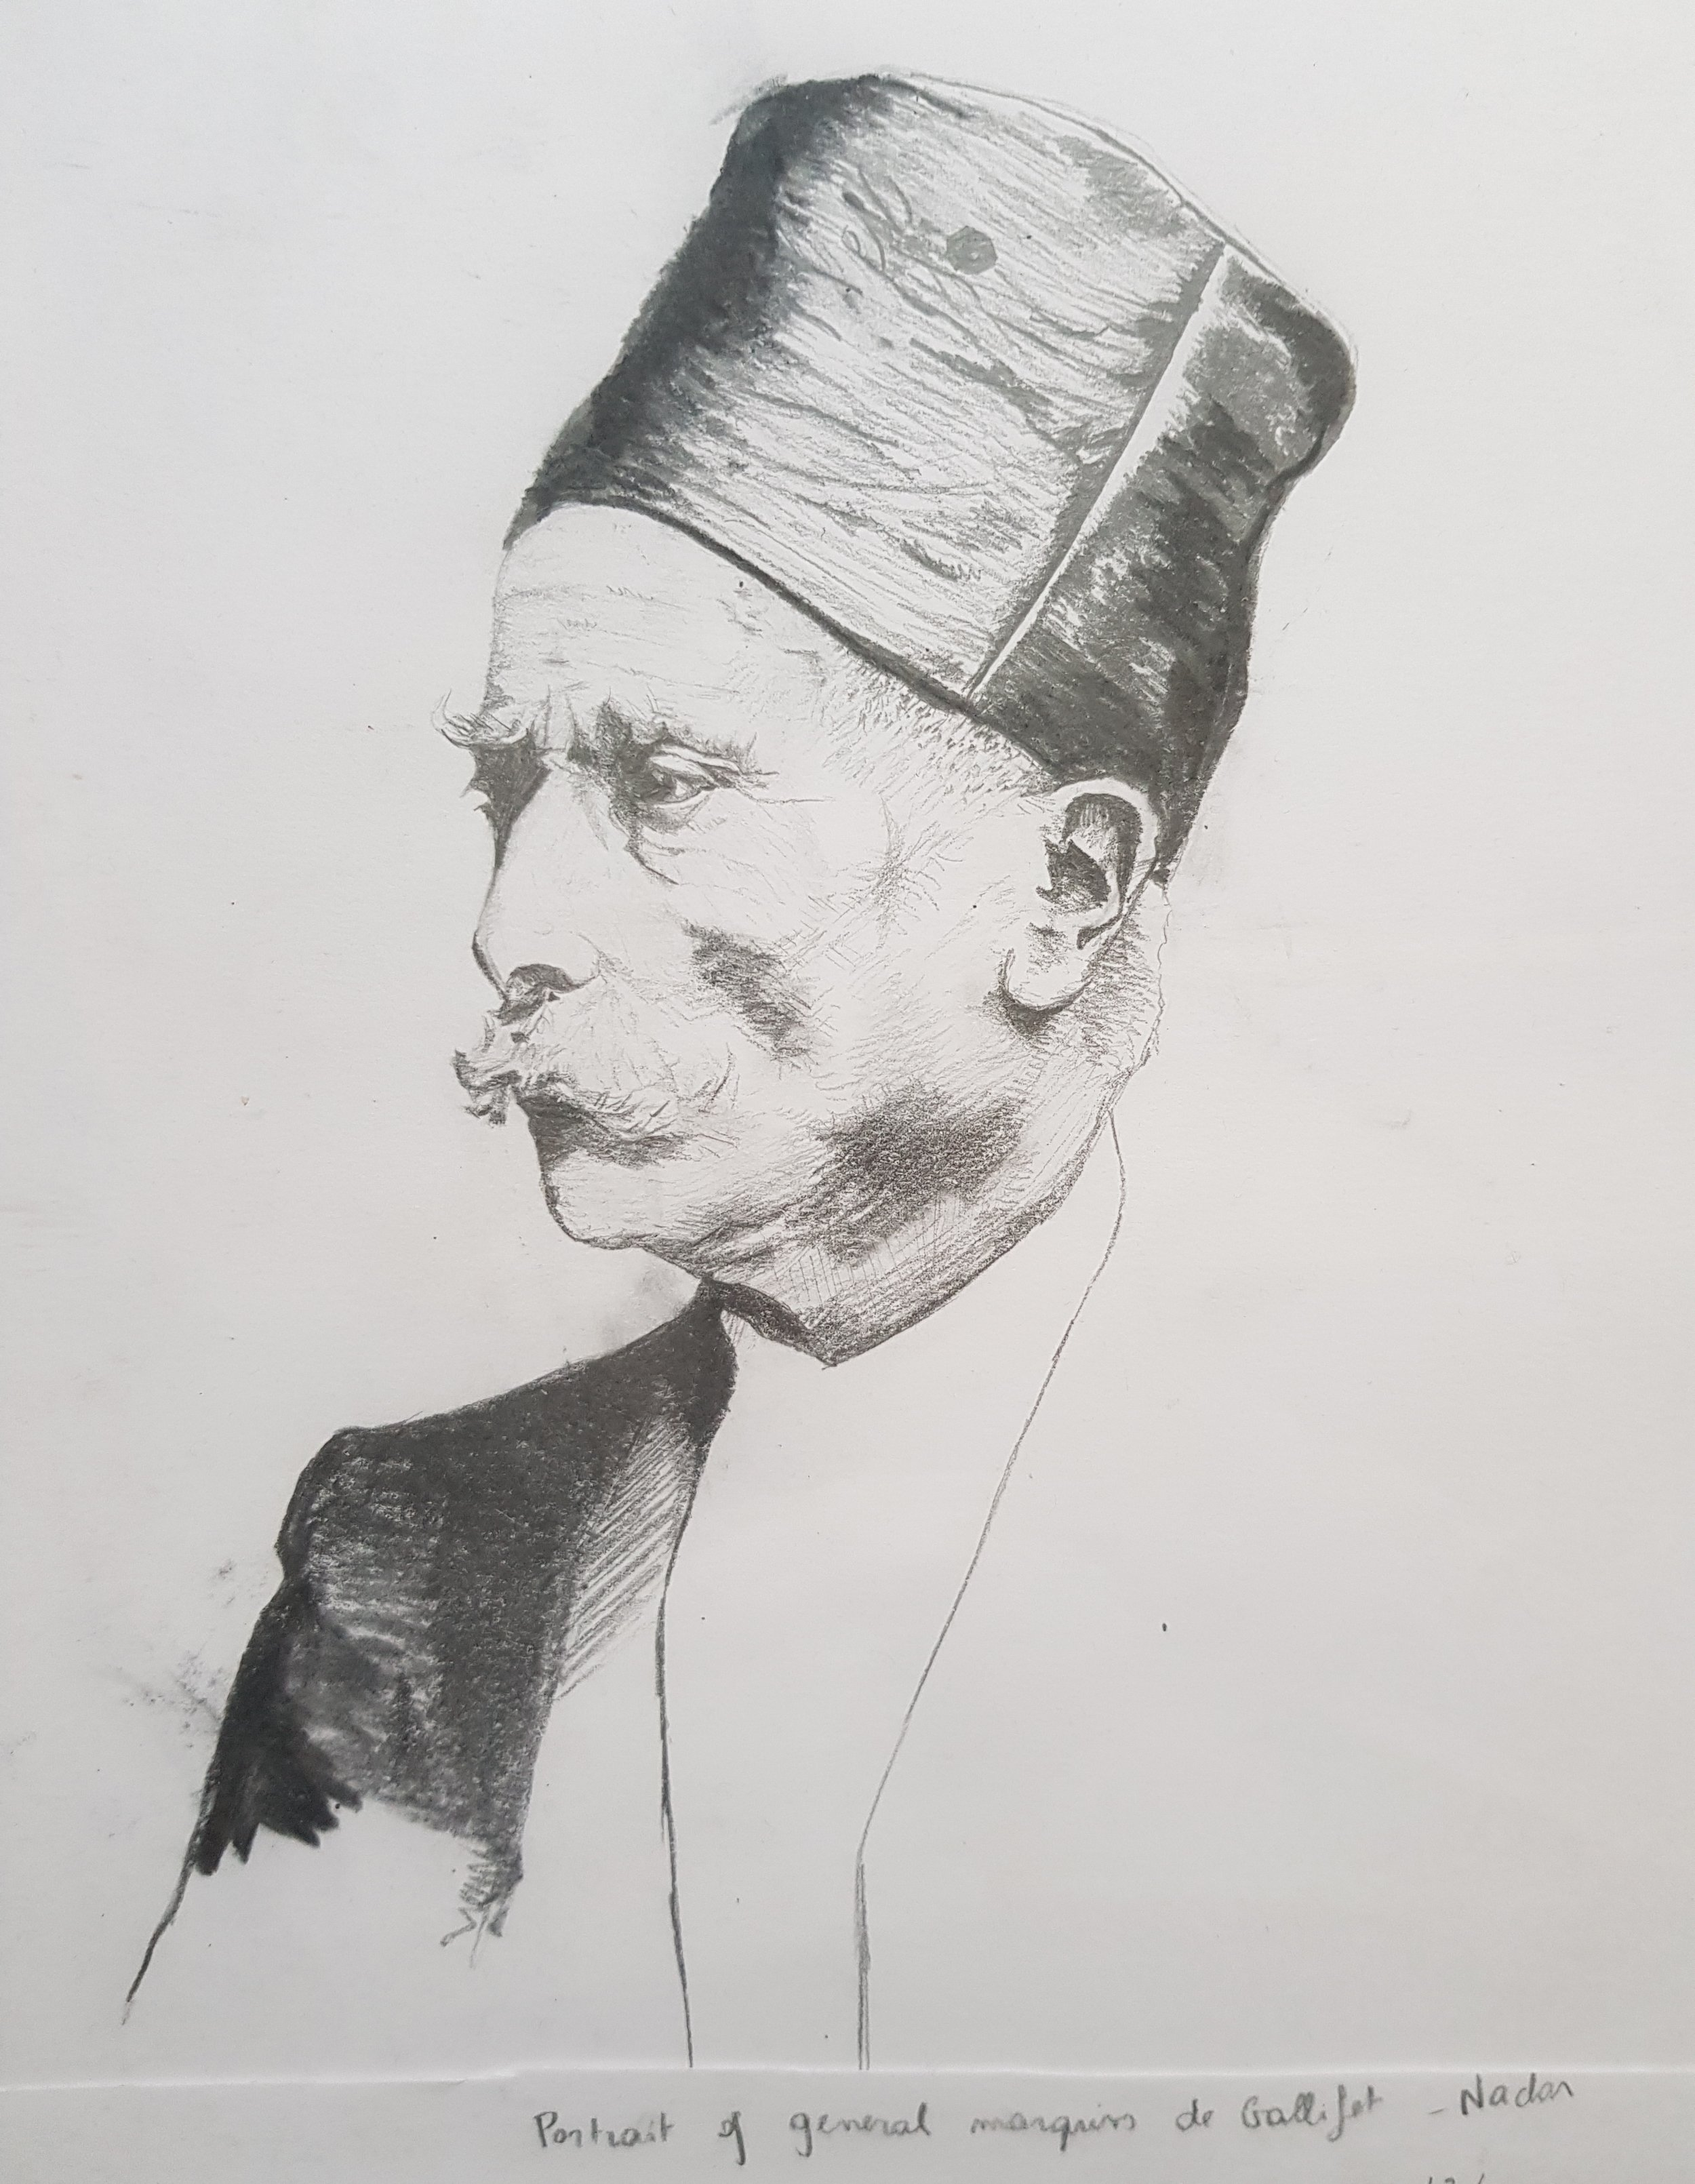 Portrait of the General Marquis of Gallifet, Nadar. March 2018